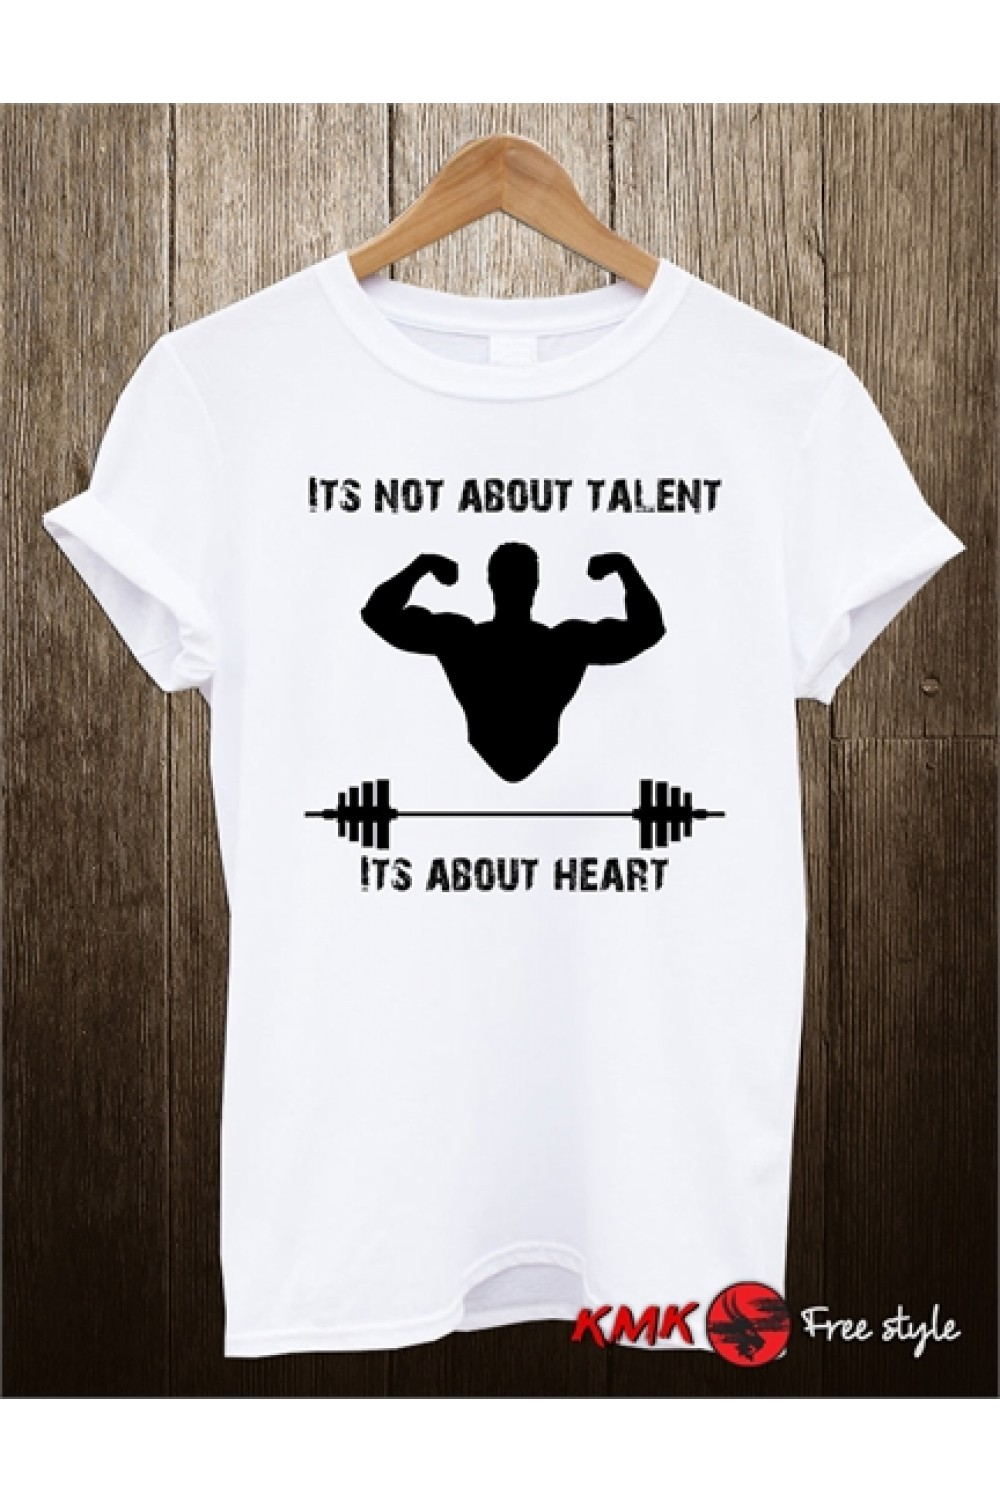 It's about heart Printed T shirt | Motivation Tee | Fist T-shirt | Short Sleeves Shirt